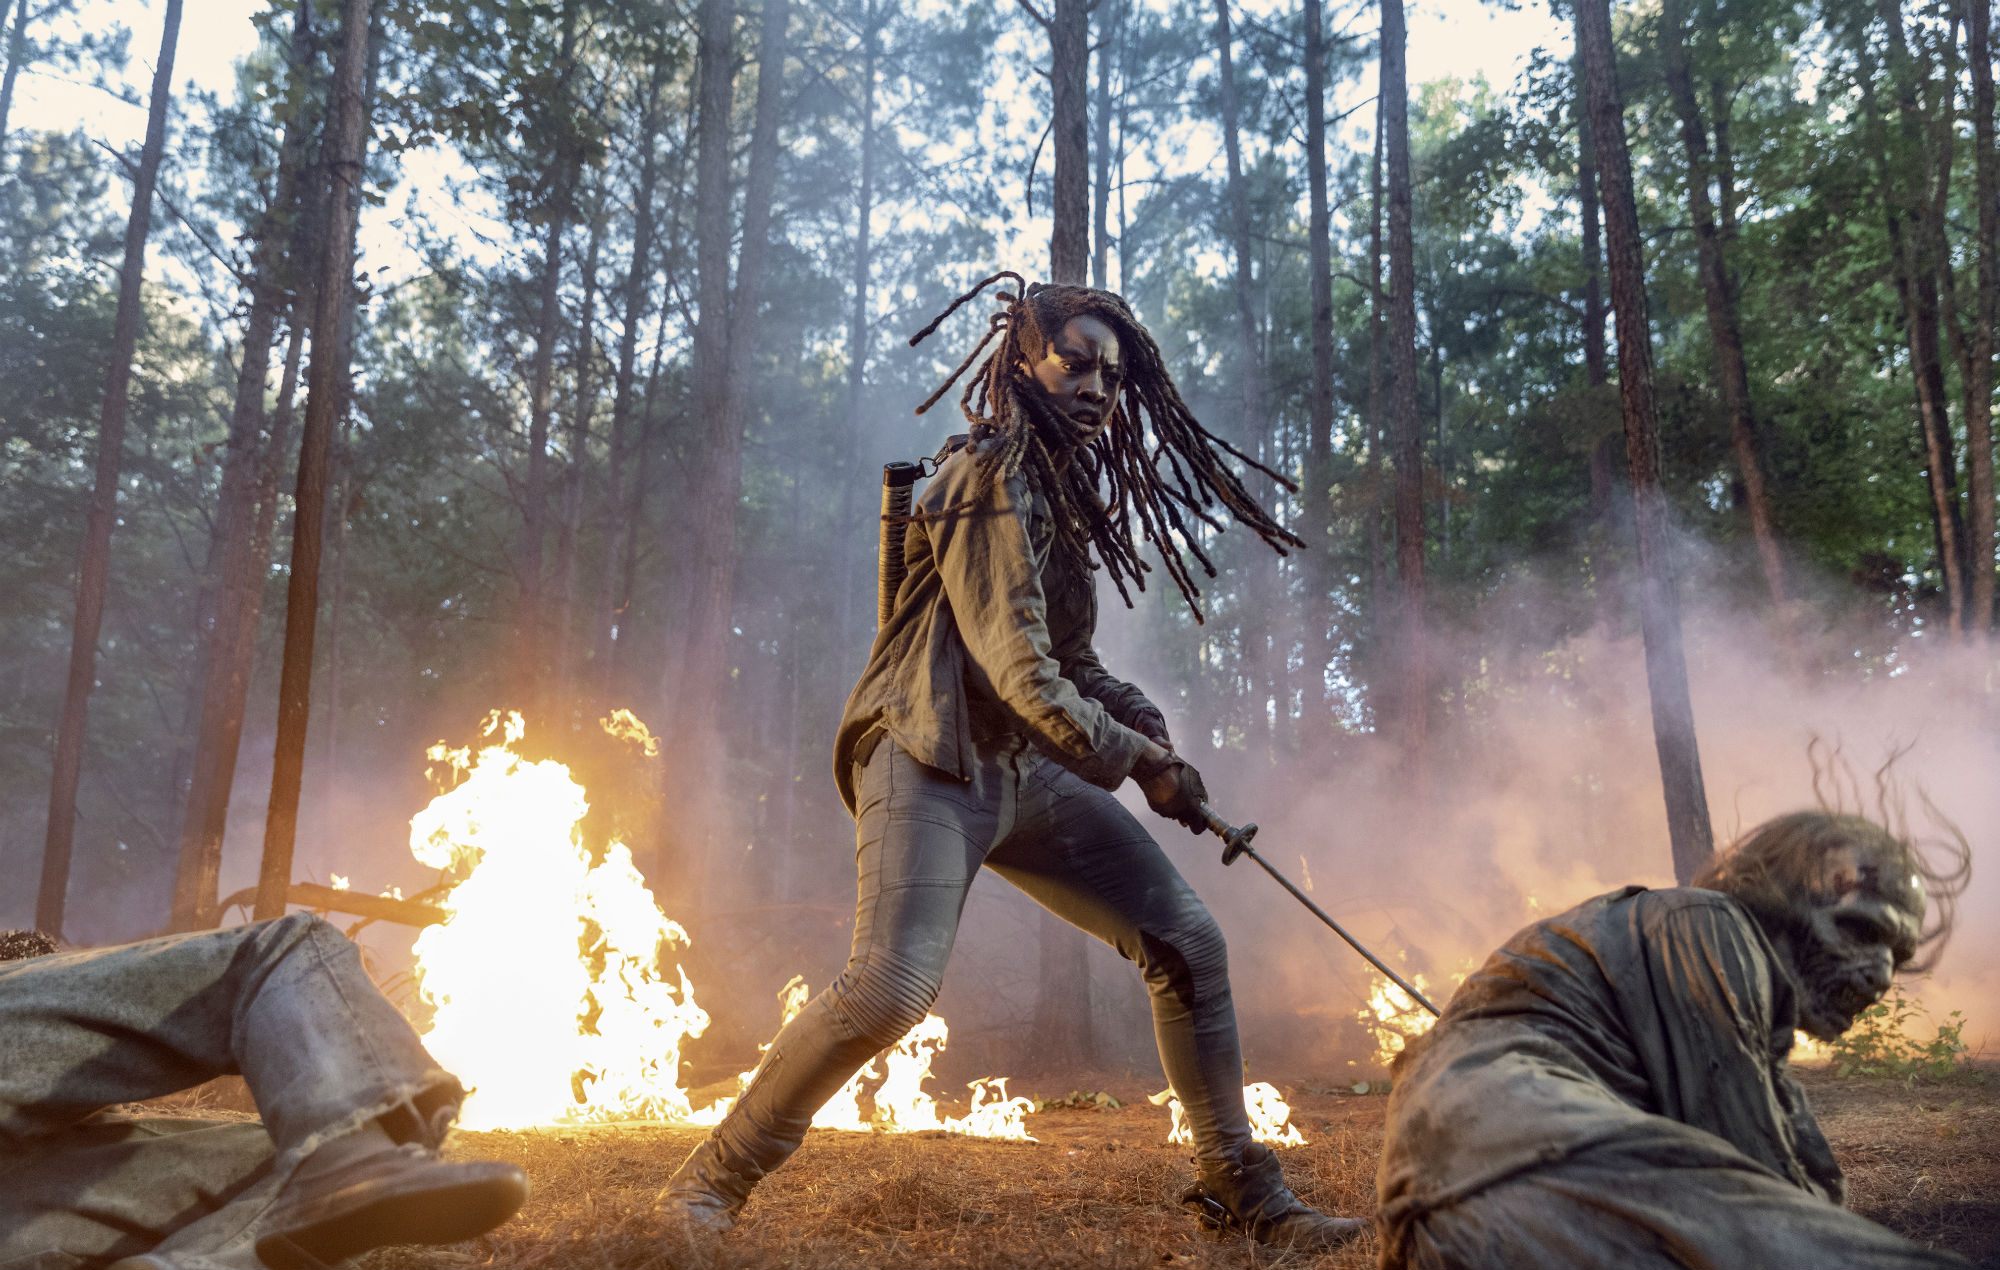 'The Walking Dead' will reportedly end after Season 12